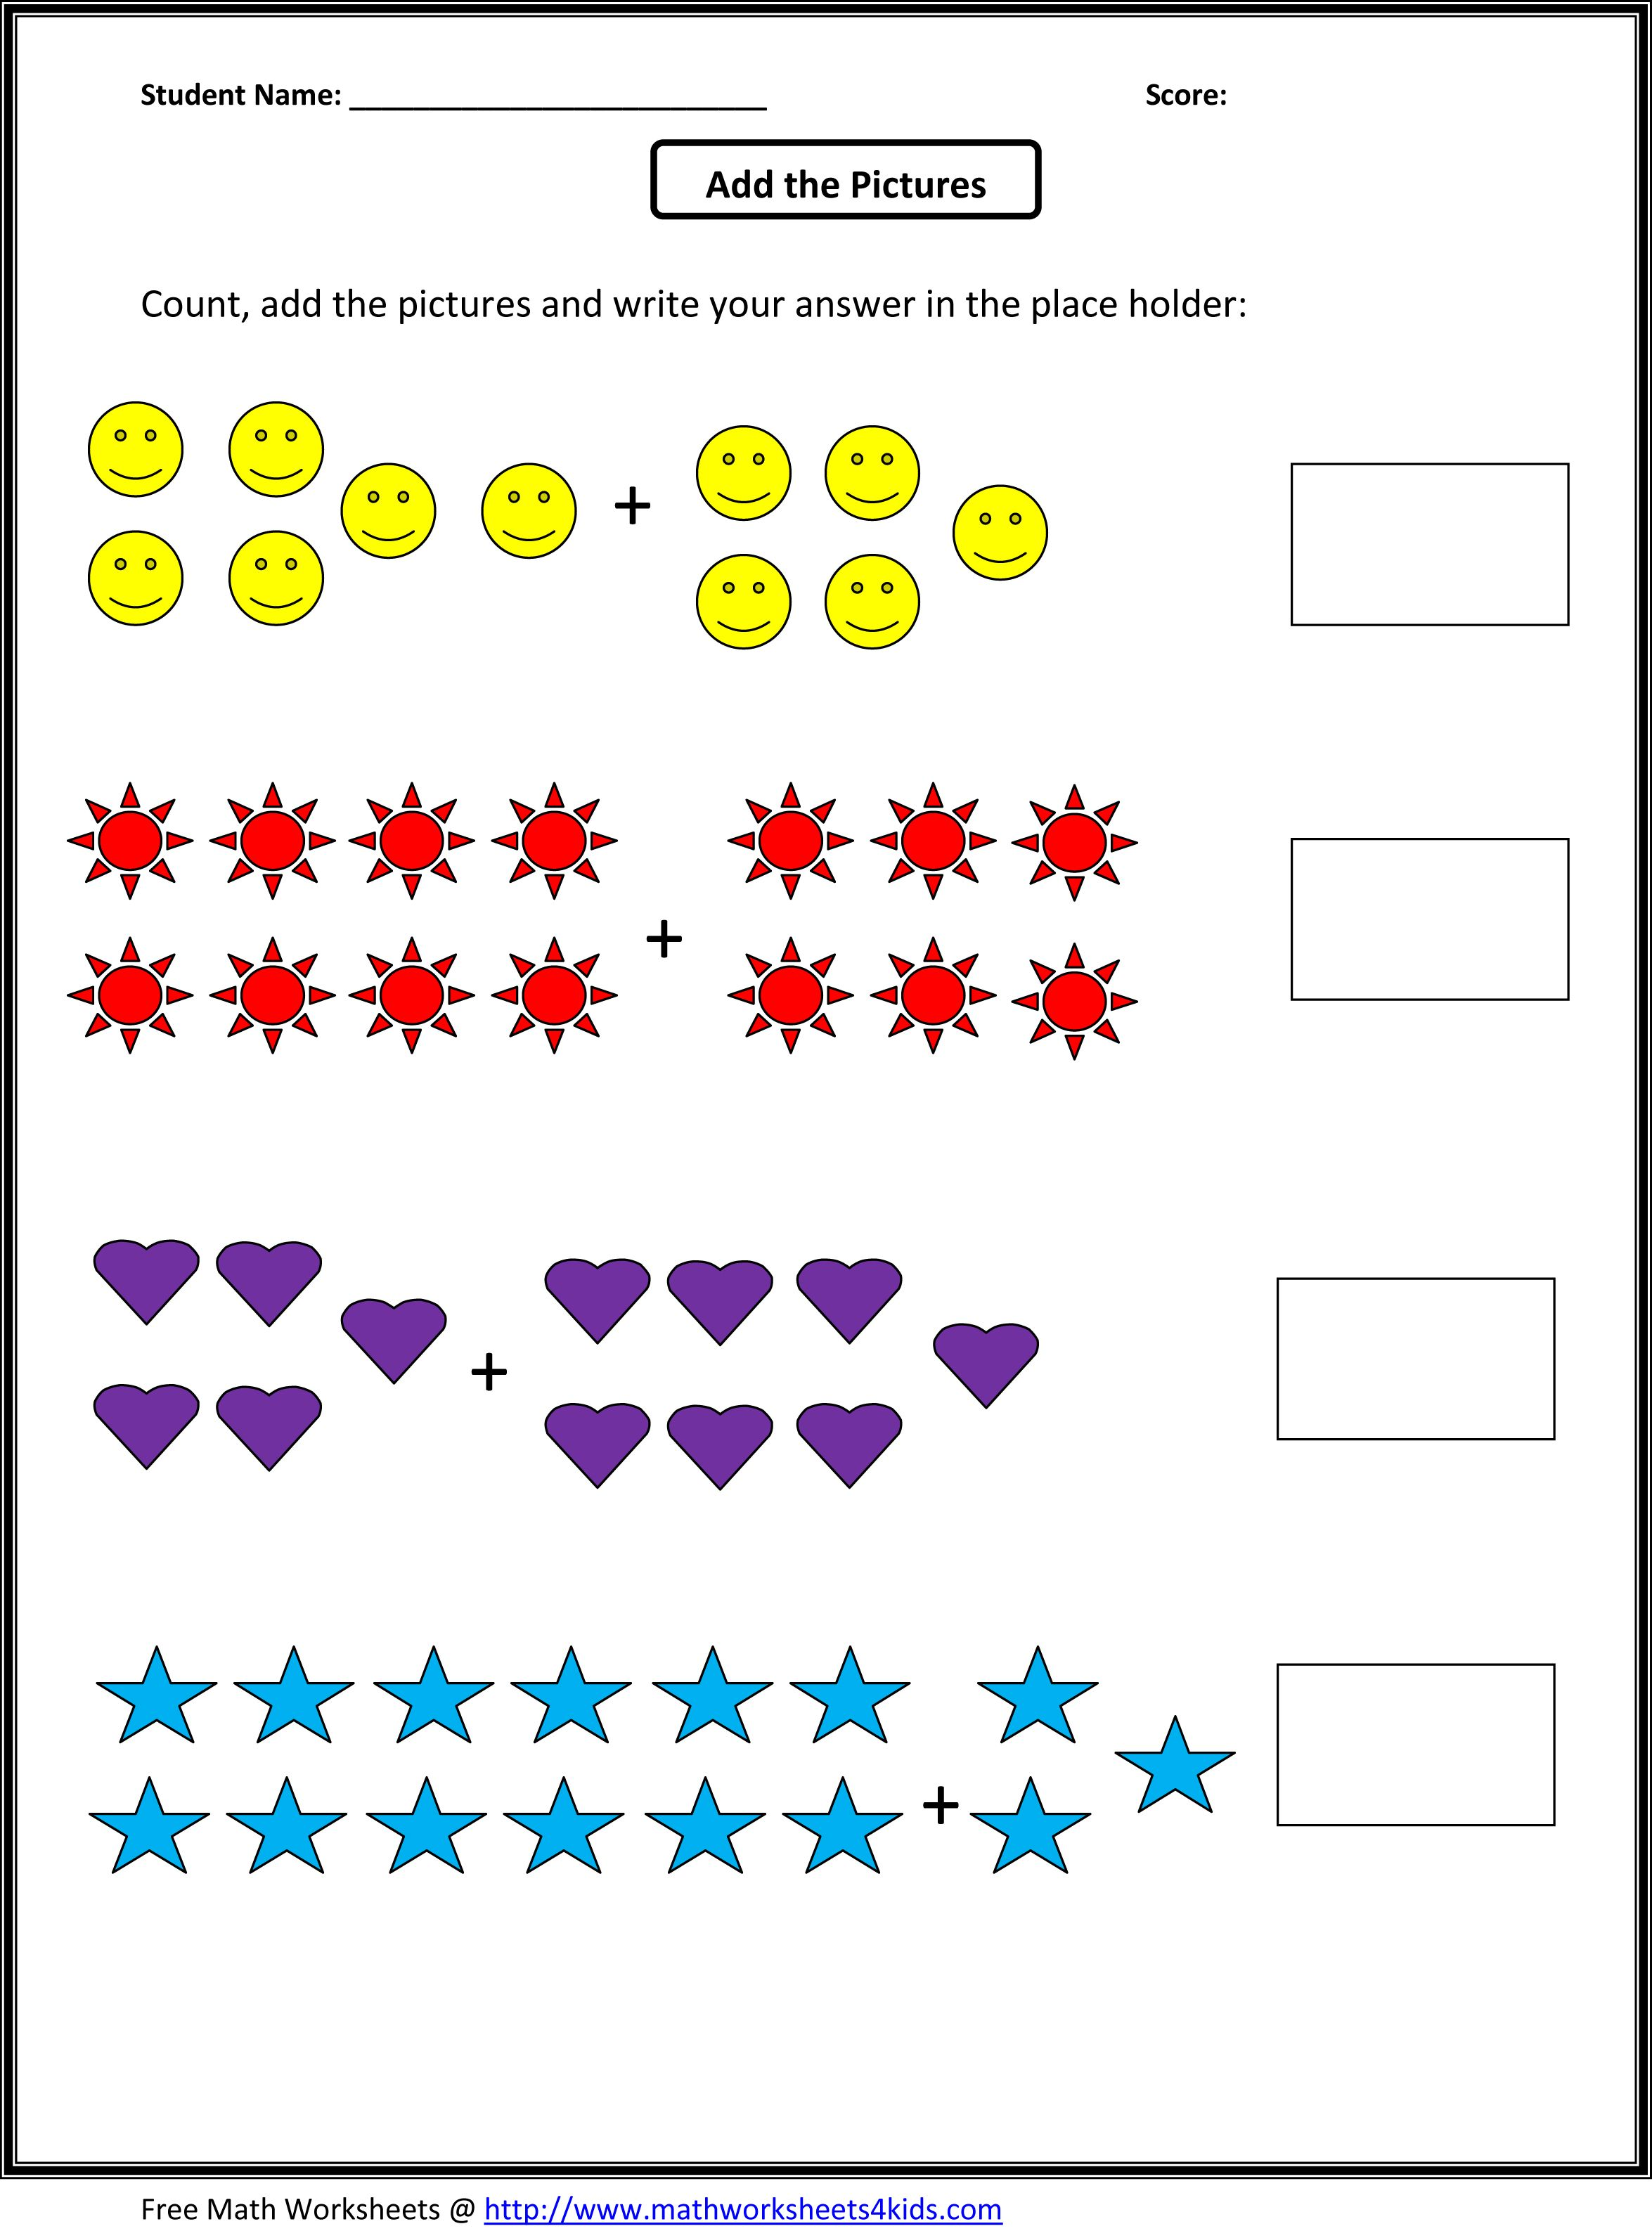 Aldiablosus  Wonderful Worksheet For Math Grade   Coffemix With Fair  Images About School On Pinterest  Mental Maths Worksheets  With Extraordinary Urdu Writing Practice Worksheets Also Practice Writing Letters And Numbers Worksheets In Addition Making  Worksheet And Using Connectives Worksheets Ks As Well As Phase  Phonics Worksheets Additionally Indices Worksheet Pdf From Coffemixcom With Aldiablosus  Fair Worksheet For Math Grade   Coffemix With Extraordinary  Images About School On Pinterest  Mental Maths Worksheets  And Wonderful Urdu Writing Practice Worksheets Also Practice Writing Letters And Numbers Worksheets In Addition Making  Worksheet From Coffemixcom